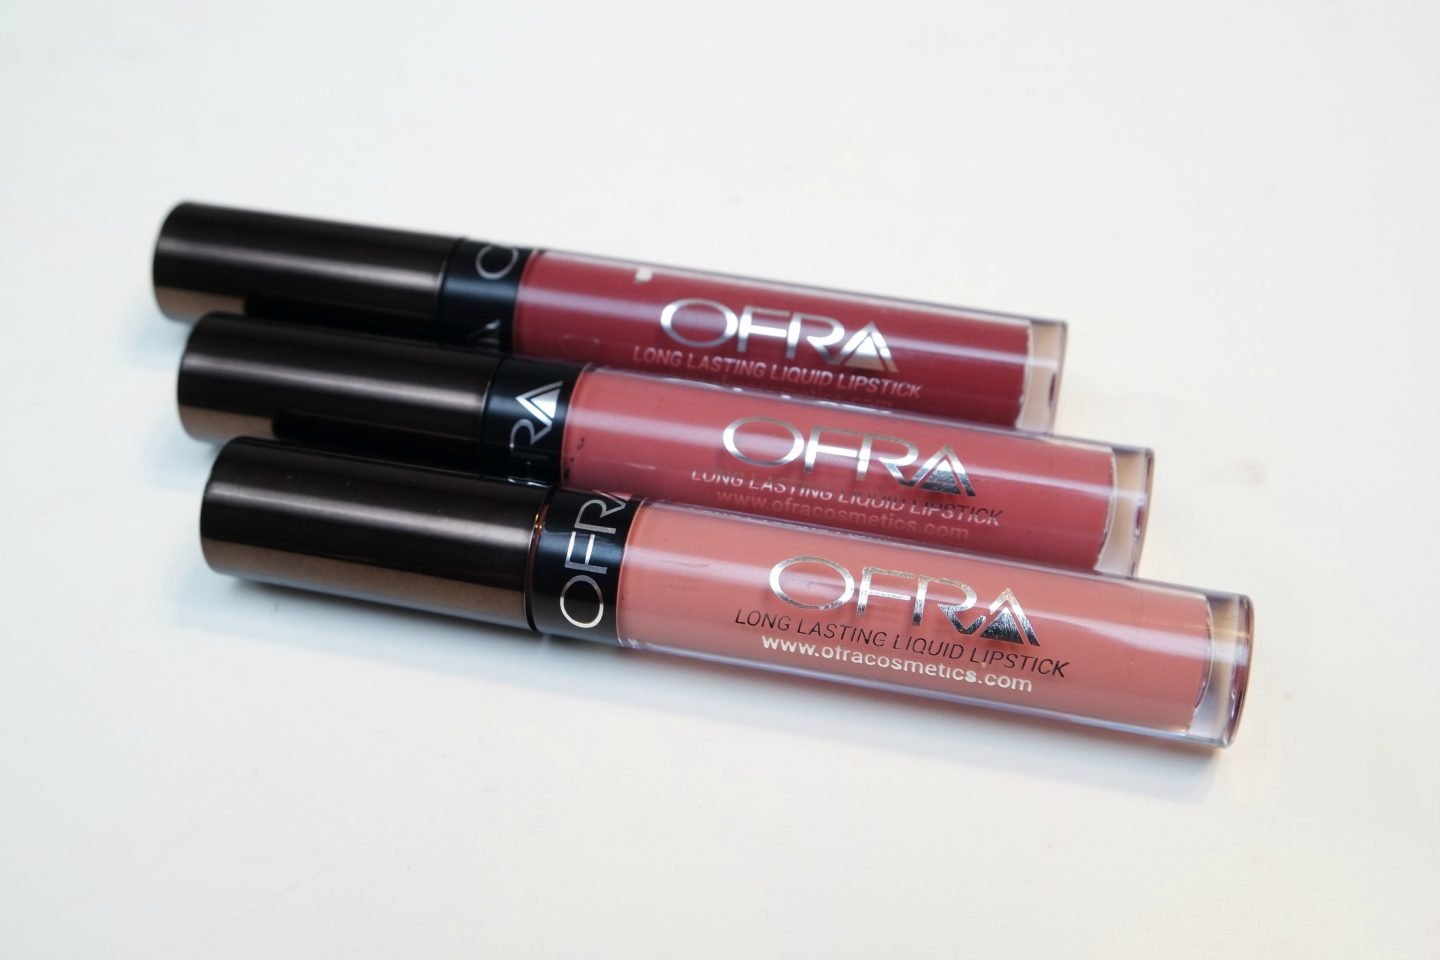 Manny x Ofra Liquid Lipsticks in Aries, Charmed and Hypno